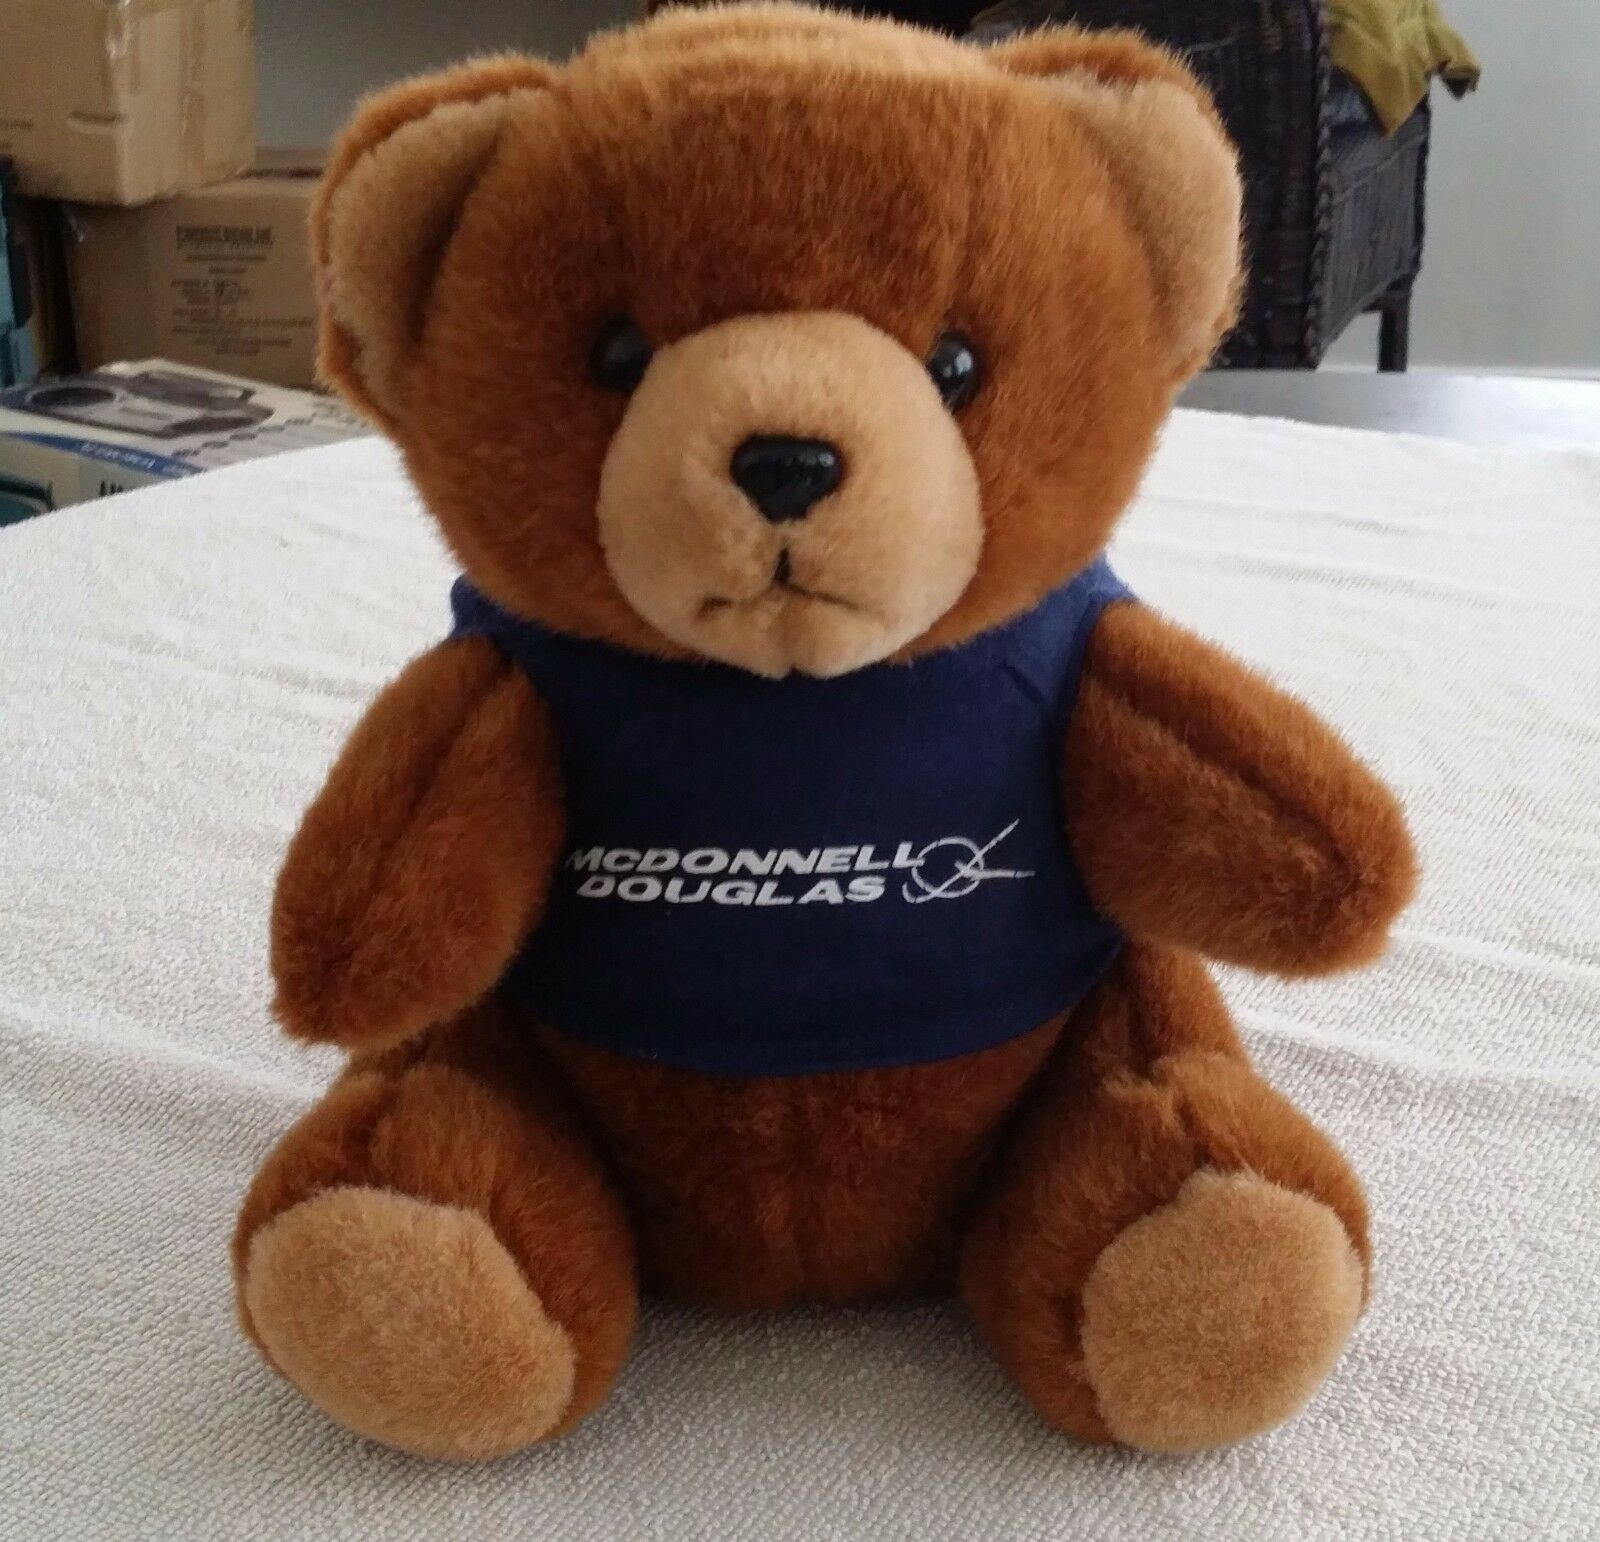 Vintage McDonnell Douglas Aerospace Teddy Bear 9.5 inches Brown